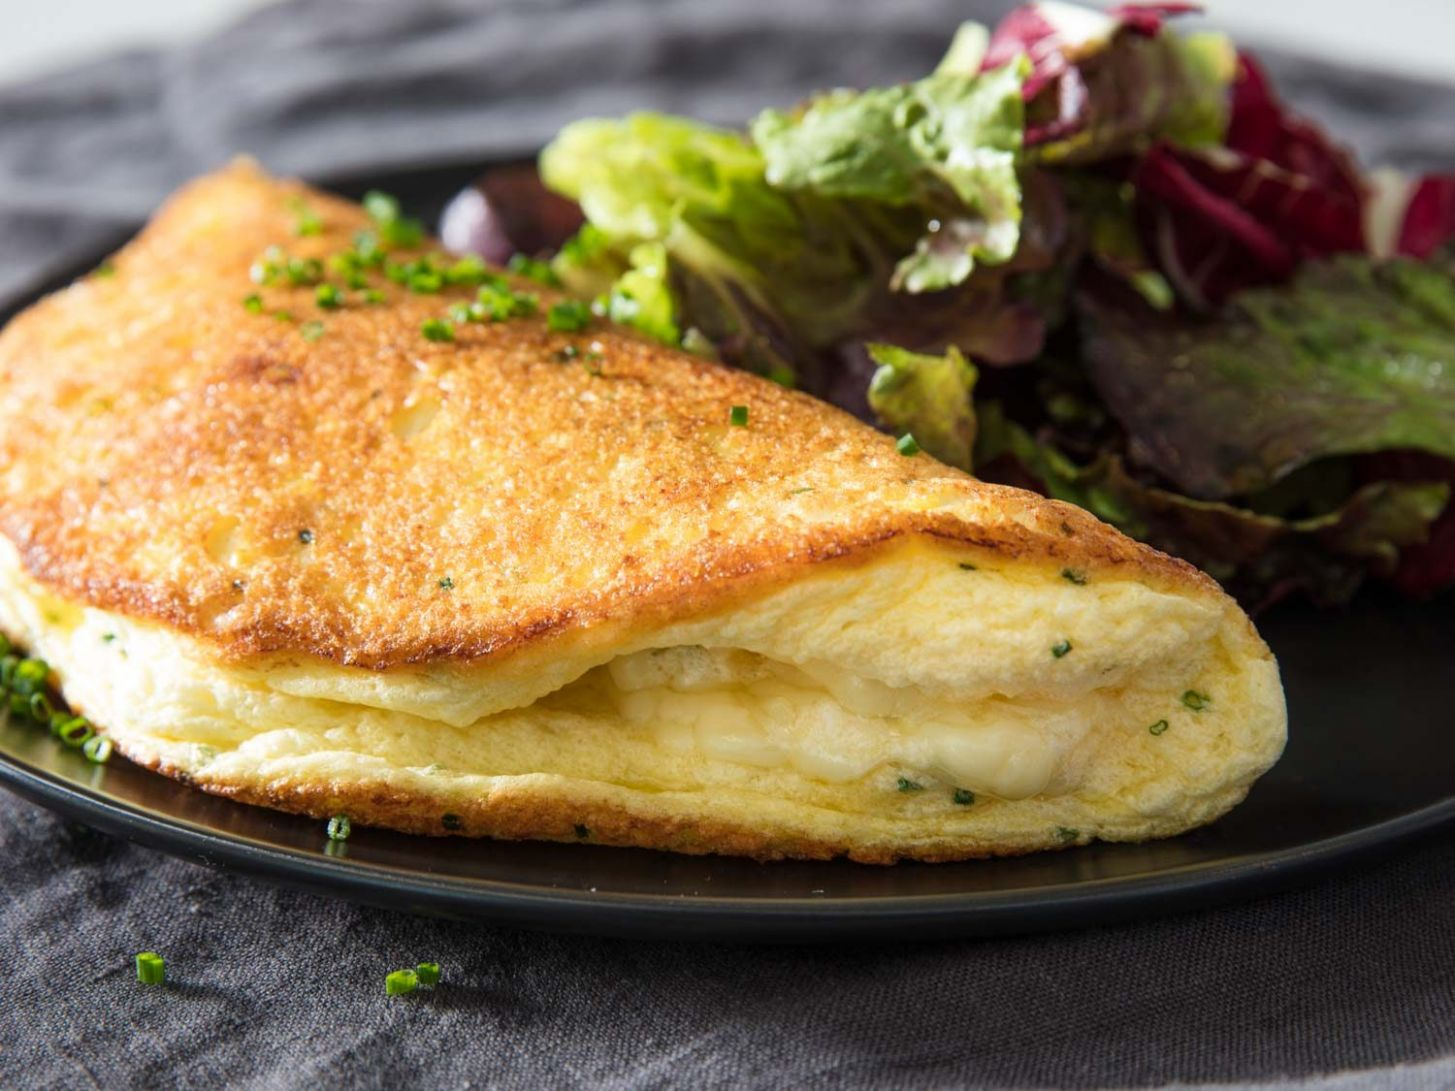 Soufflé Omelette With Cheese Recipe - Recipe Egg Omelette Cheese